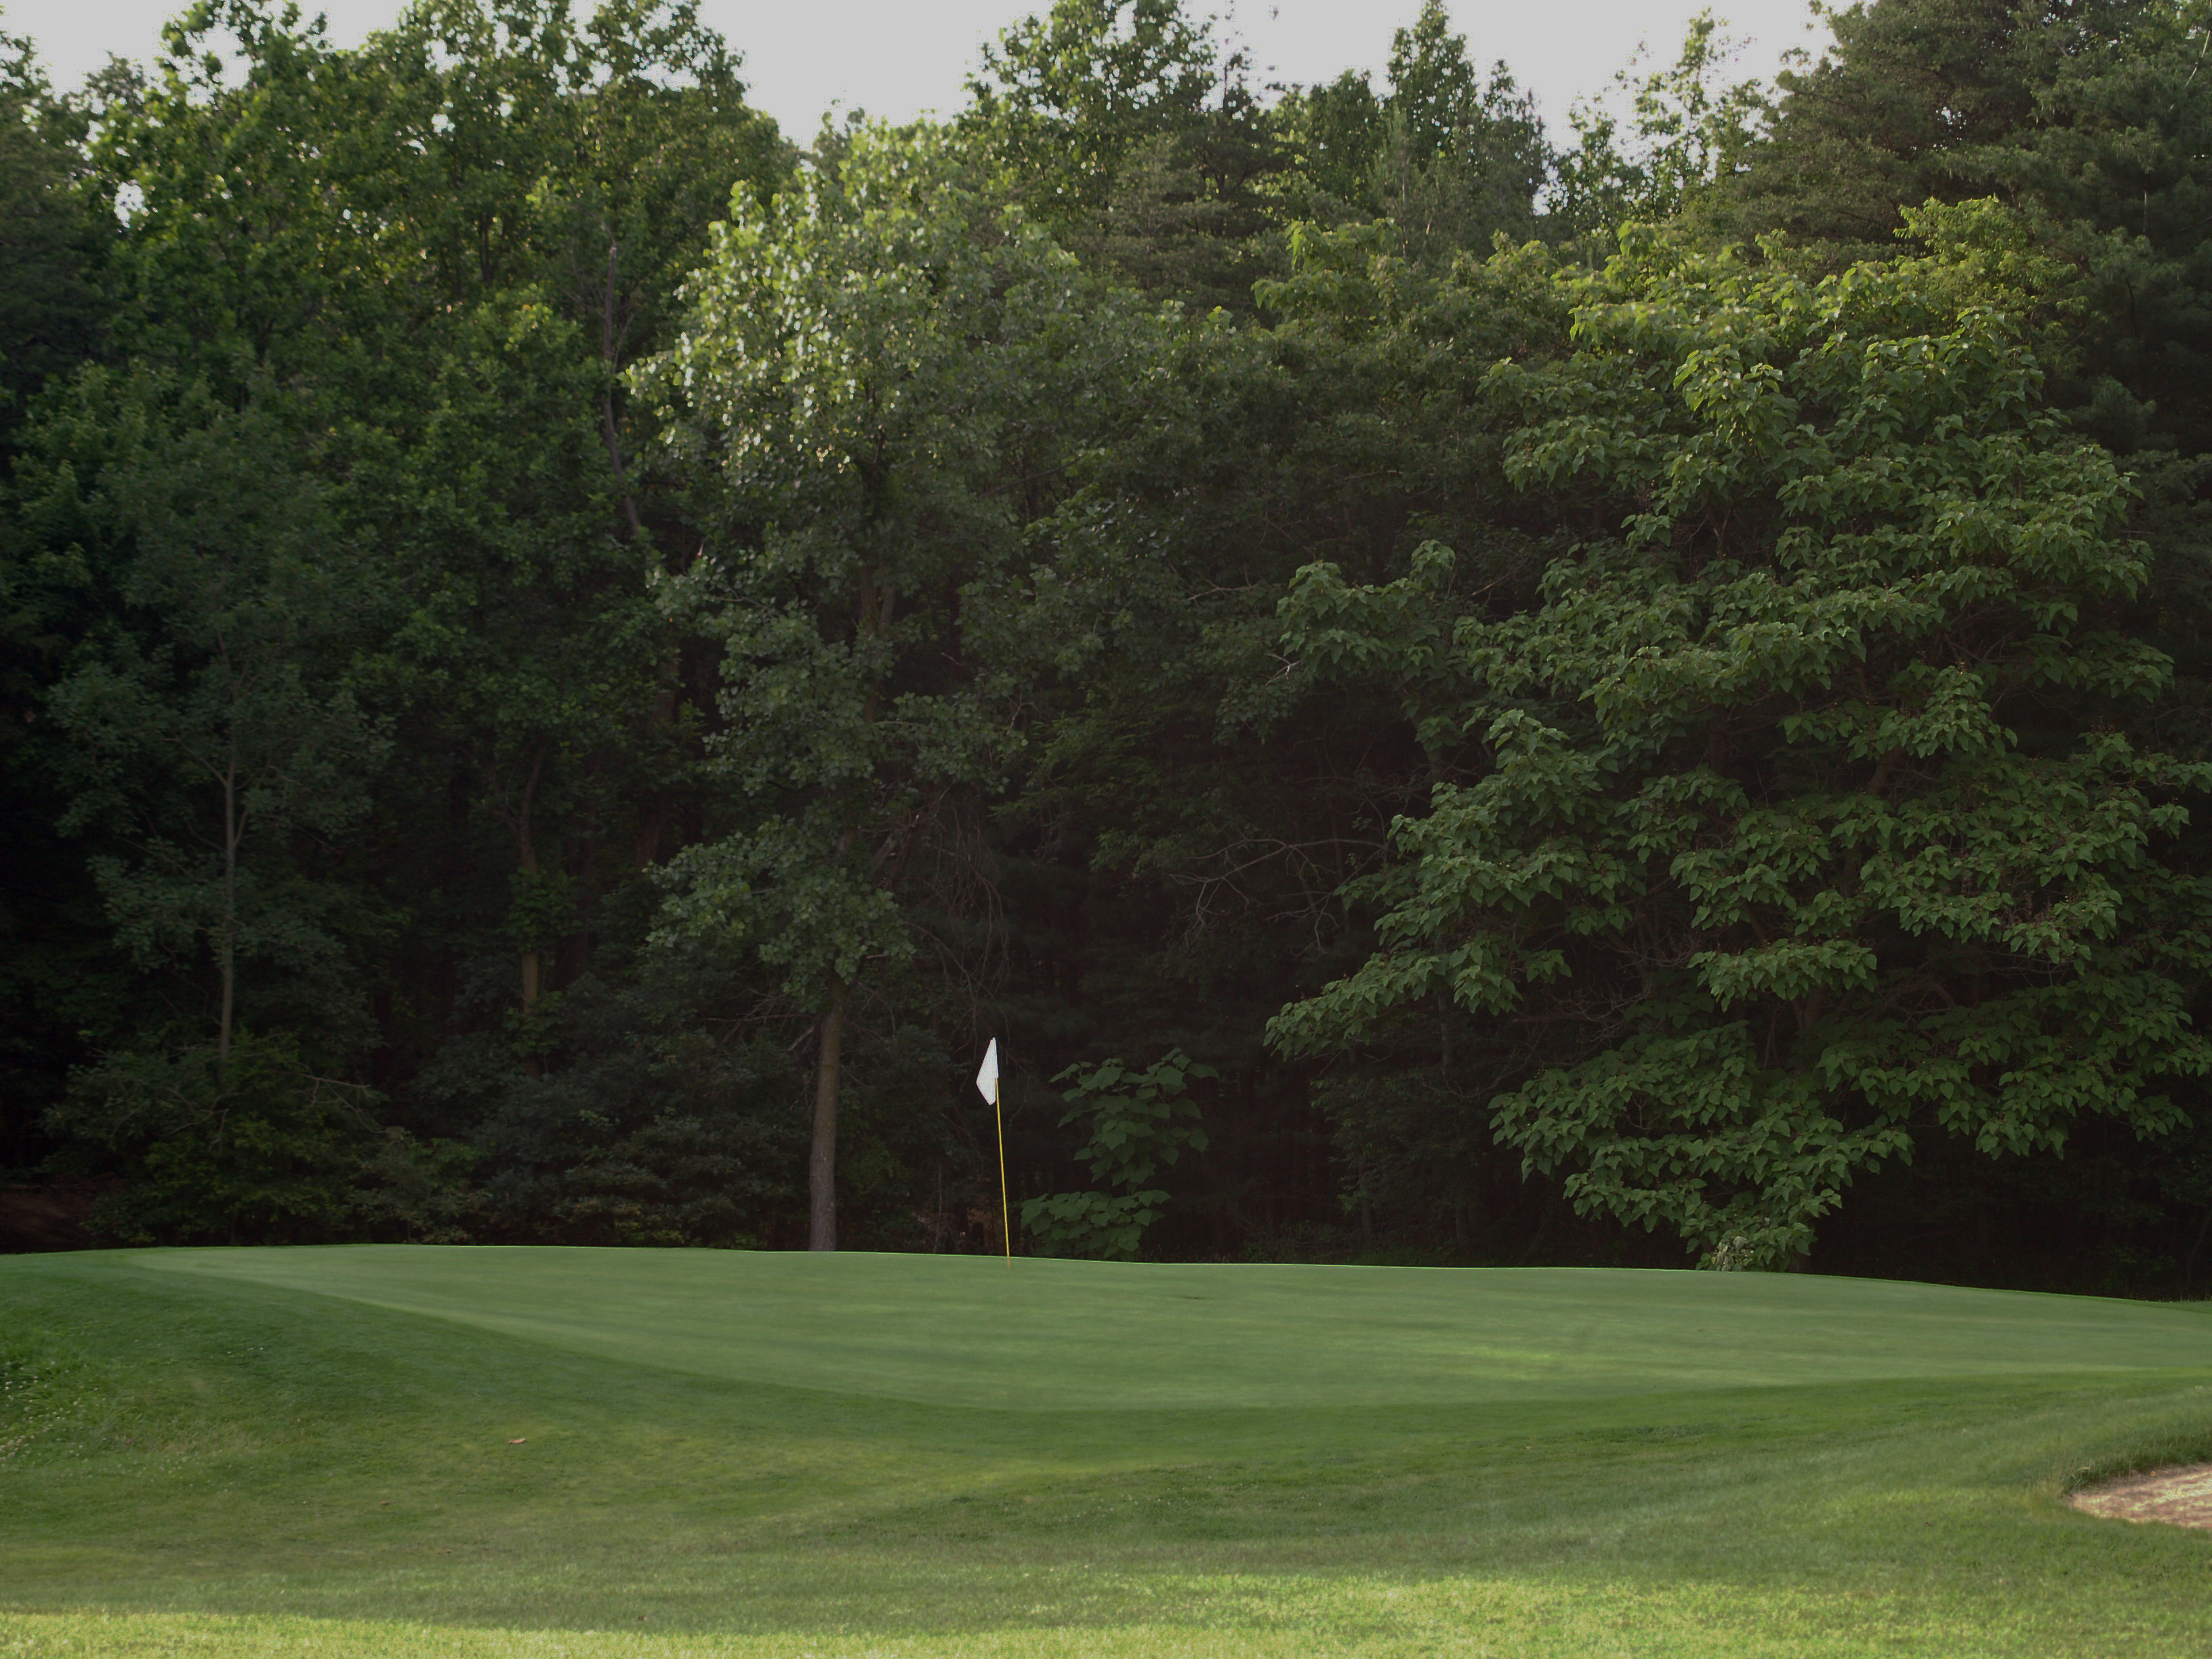 View of fourteenth hole toward the green from about 100 yrds. Click to enlarge